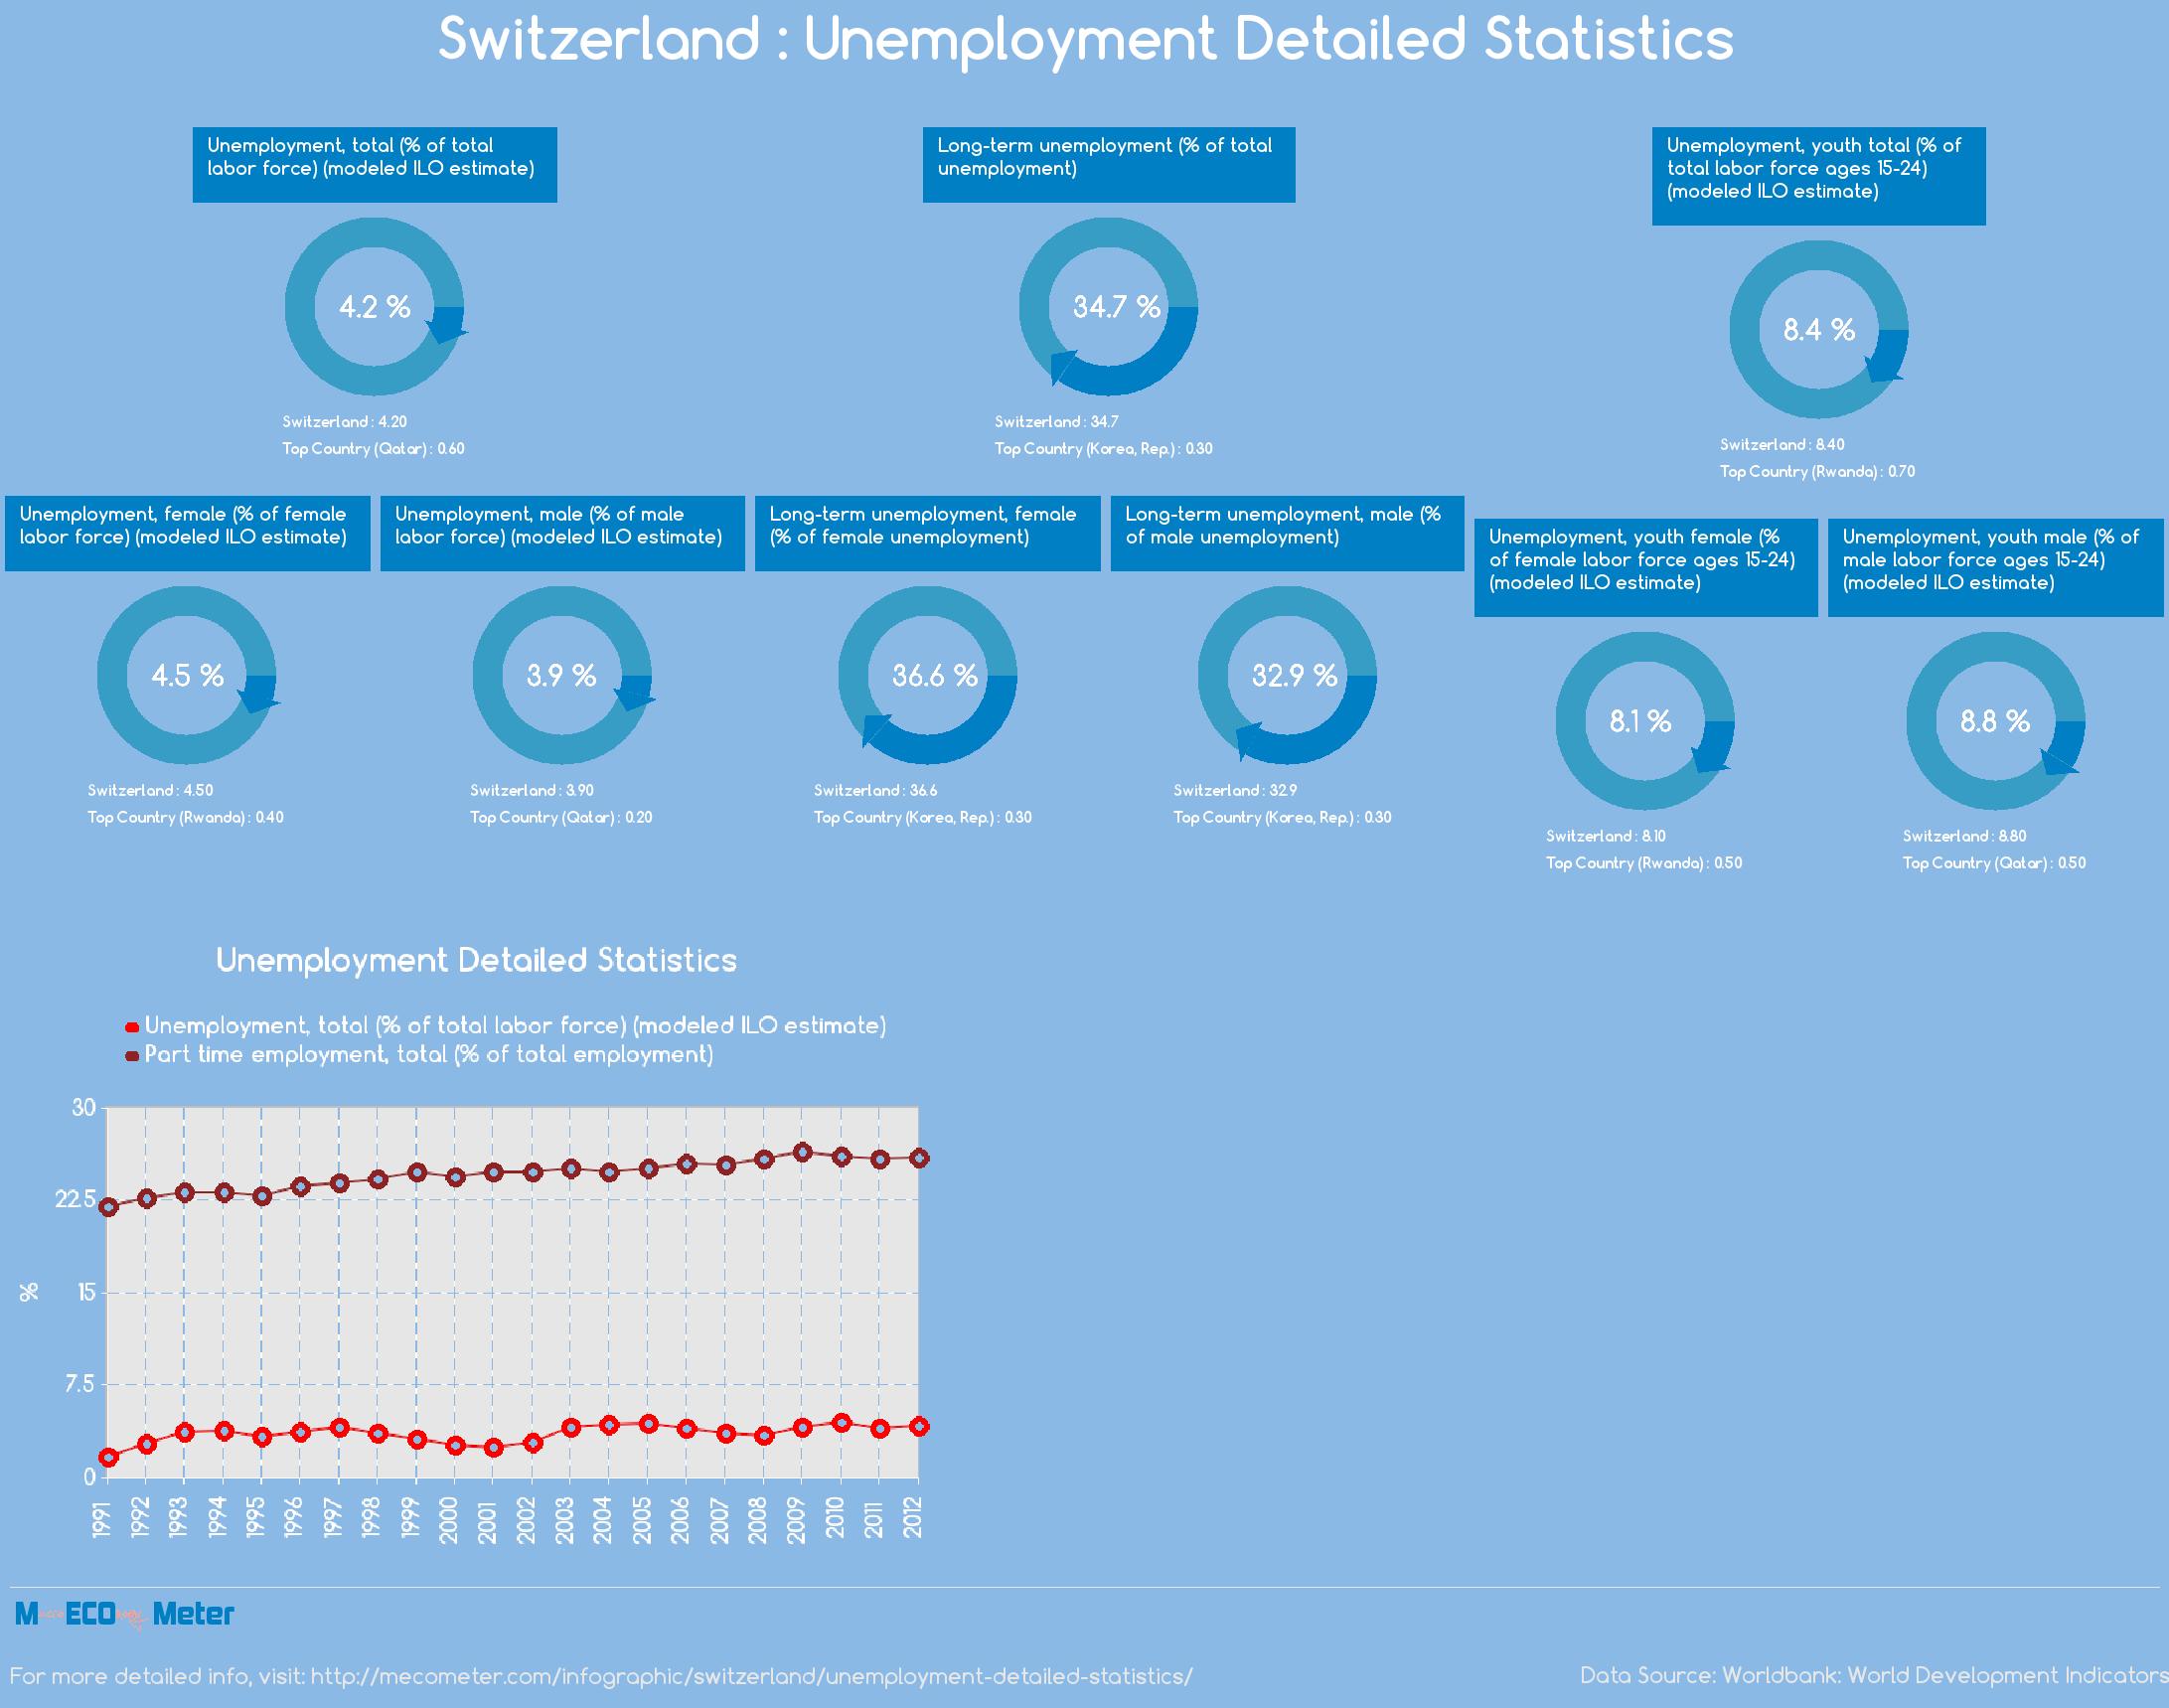 Switzerland : Unemployment Detailed Statistics